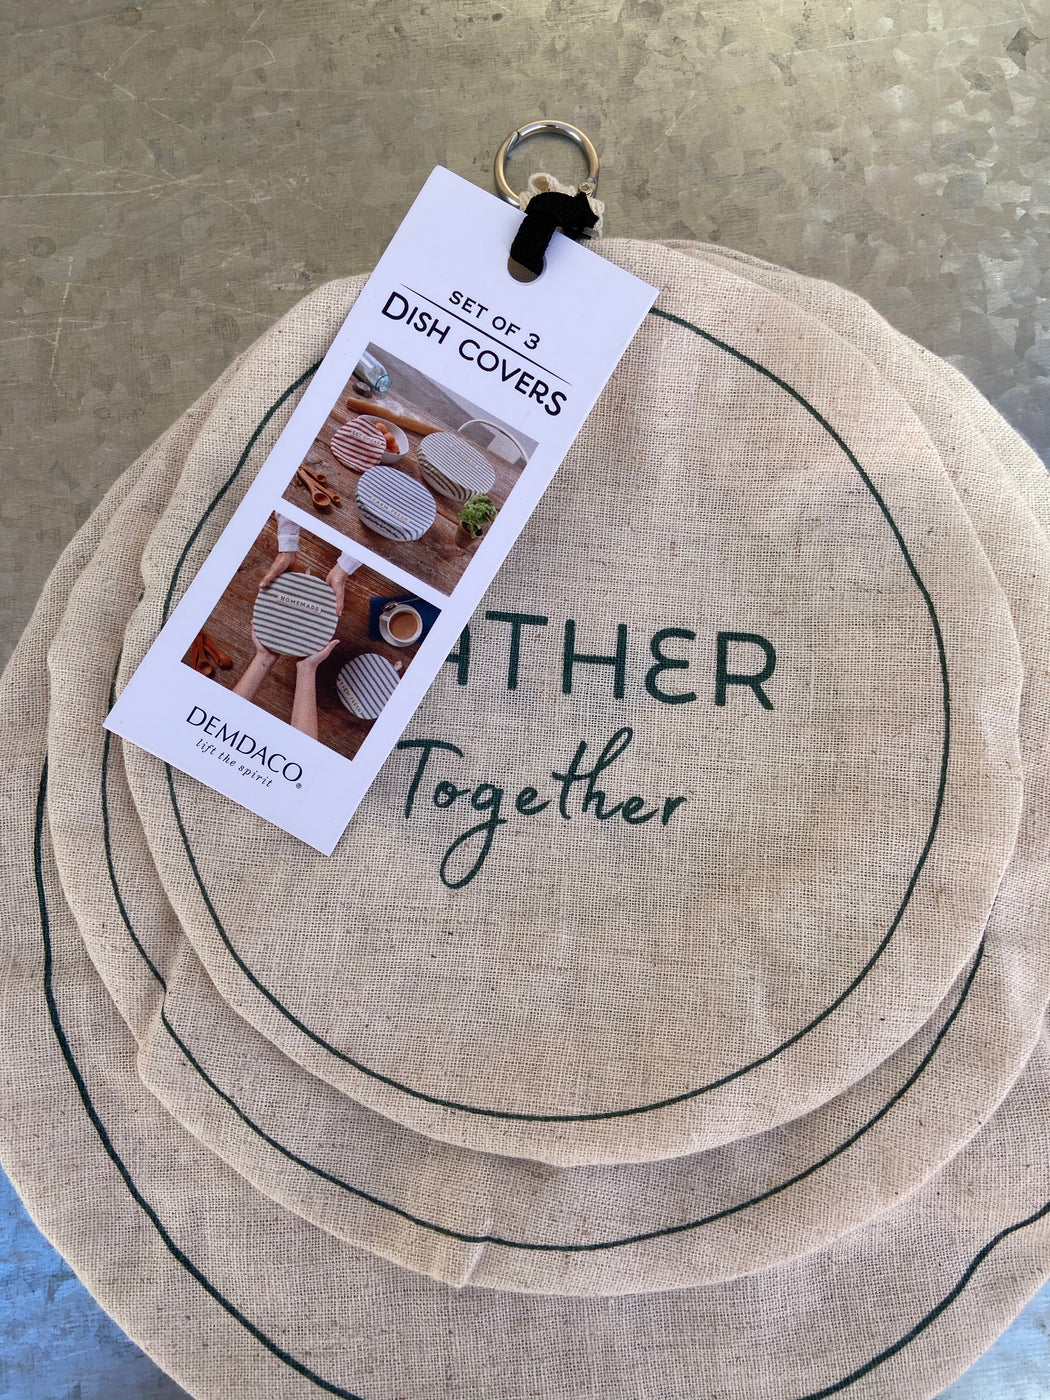 "Size: 10.5""H x10.5""W x0.25""D Materials: cotton, linen Care Instructions: Warm Iron as Needed, Wash With Similar Colors Only, Tumble Dry - Low, Machine Wash - Cold, Do Not Bleach, Machine Wash - Delicate Sentiment: Gather Together; Made To Share; Good Food"